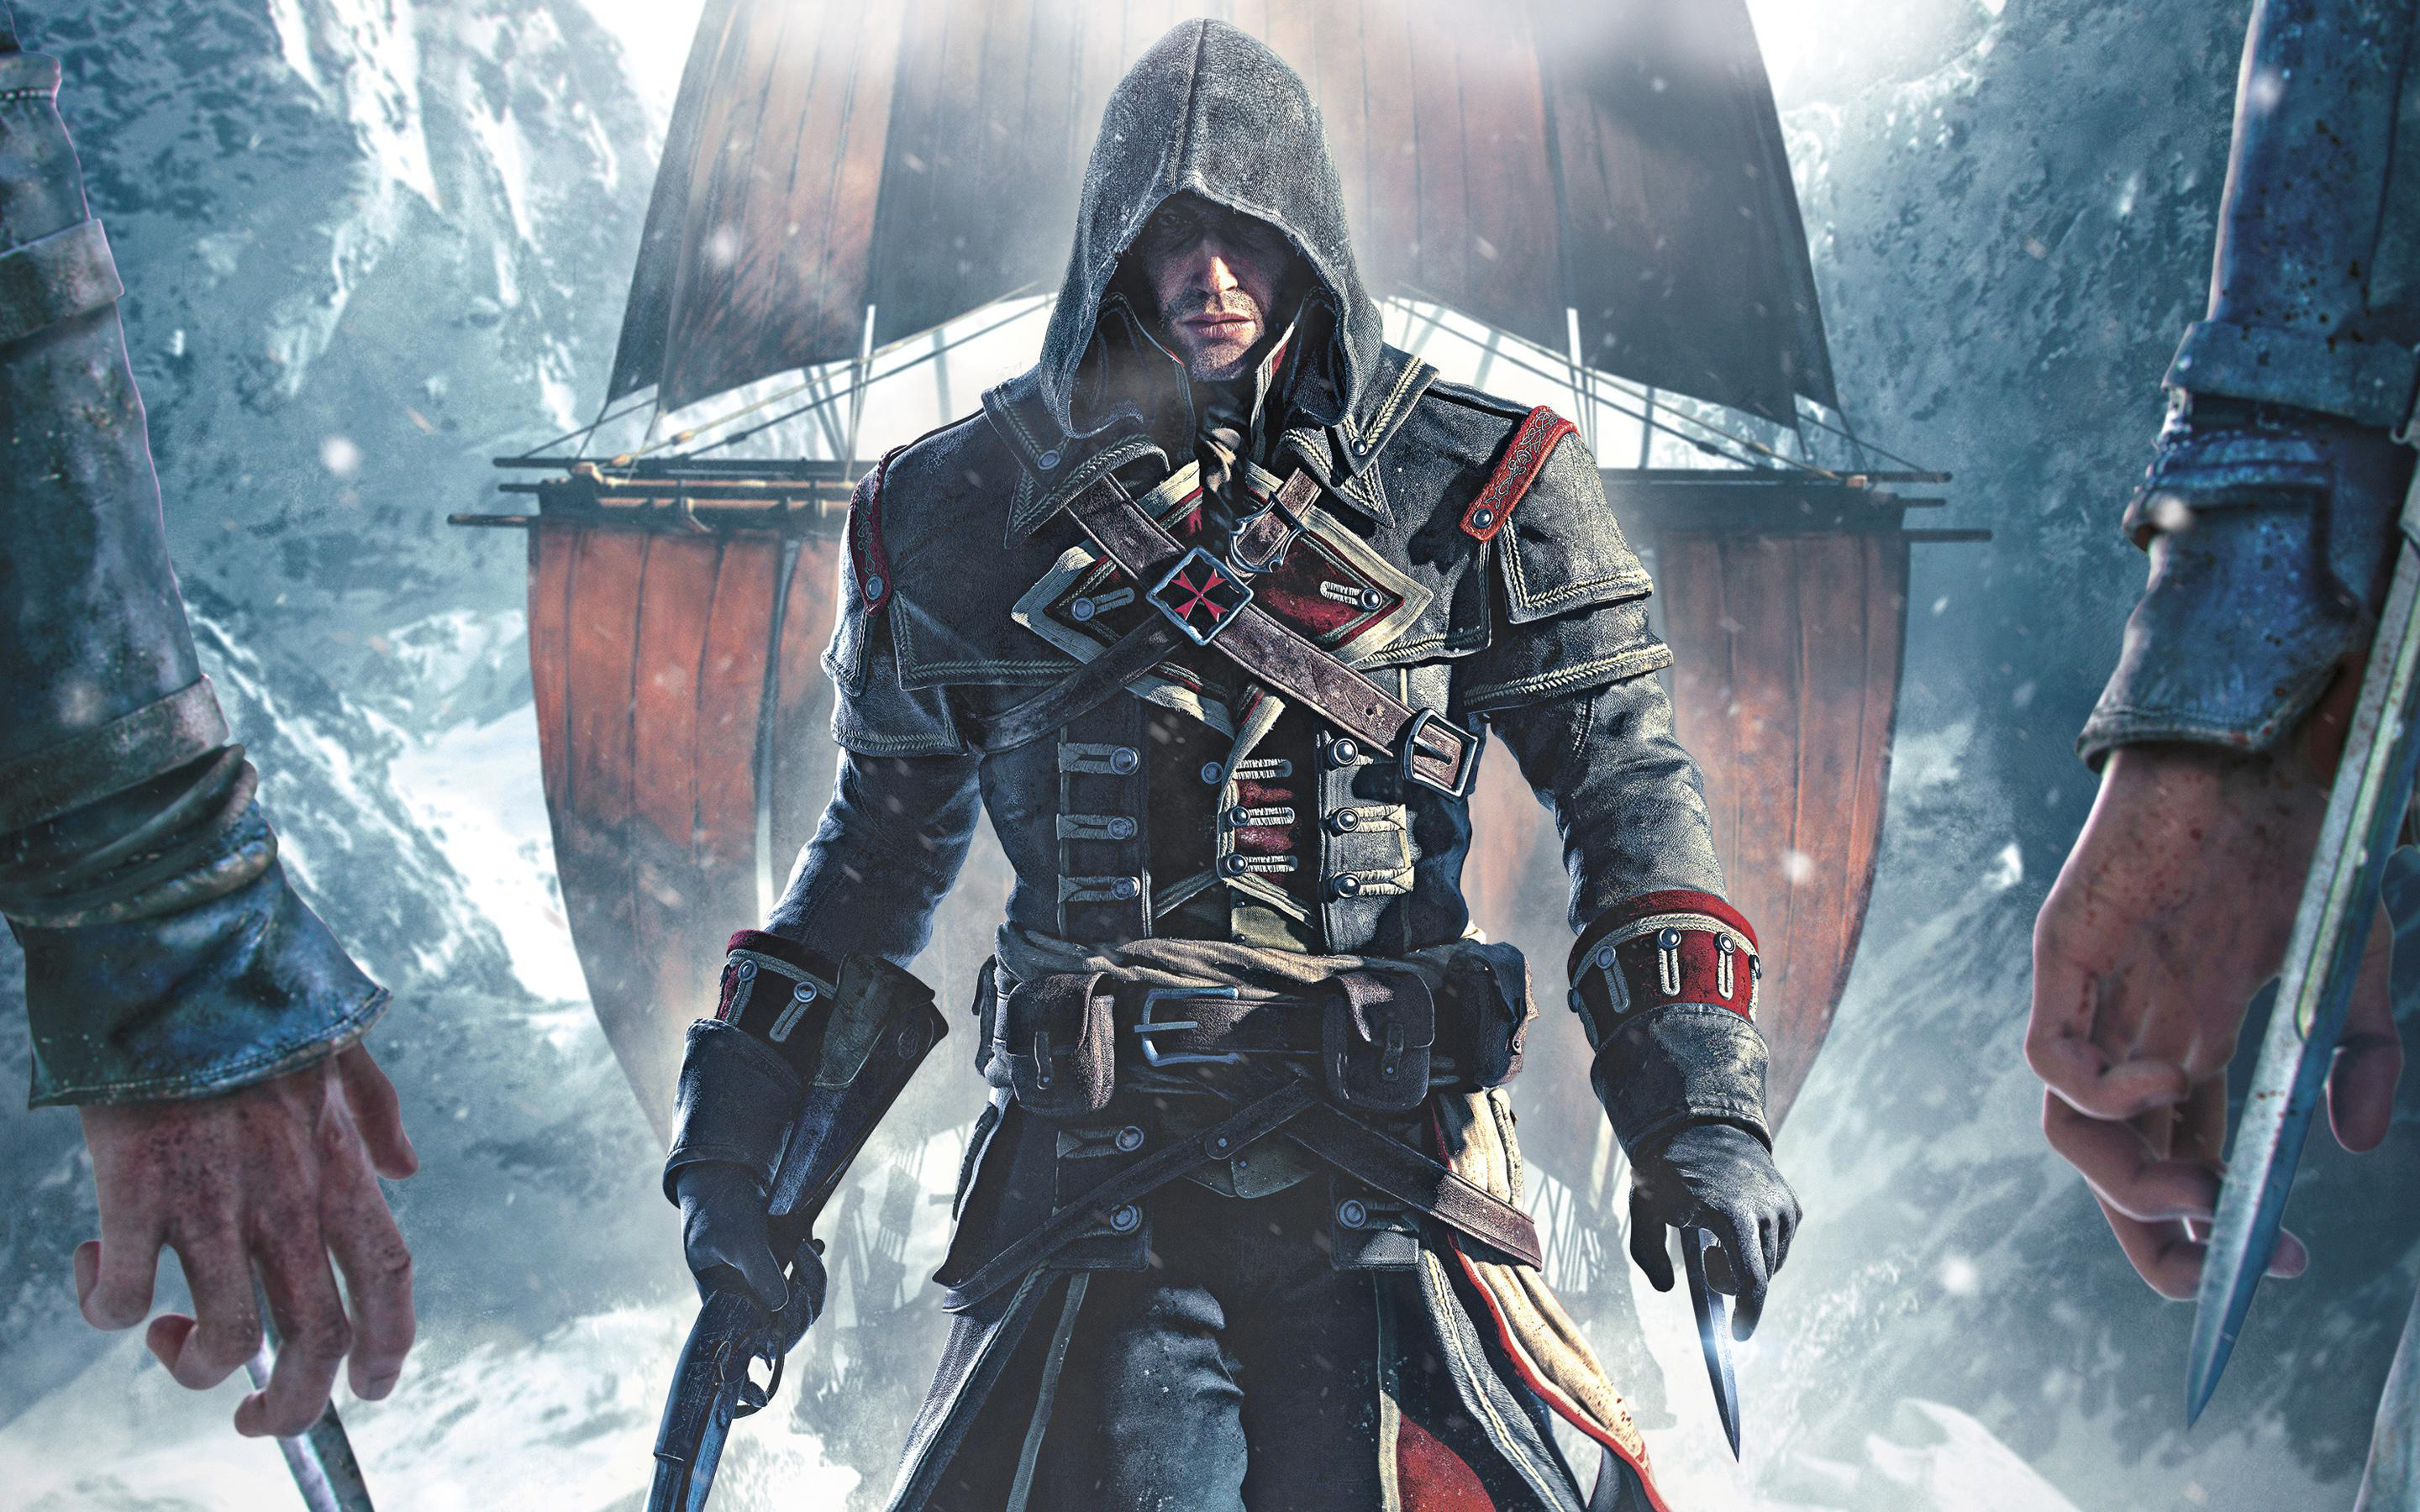 All Games Delta Assassin S Creed Rogue Hd Rated For Ps4 And Xbox